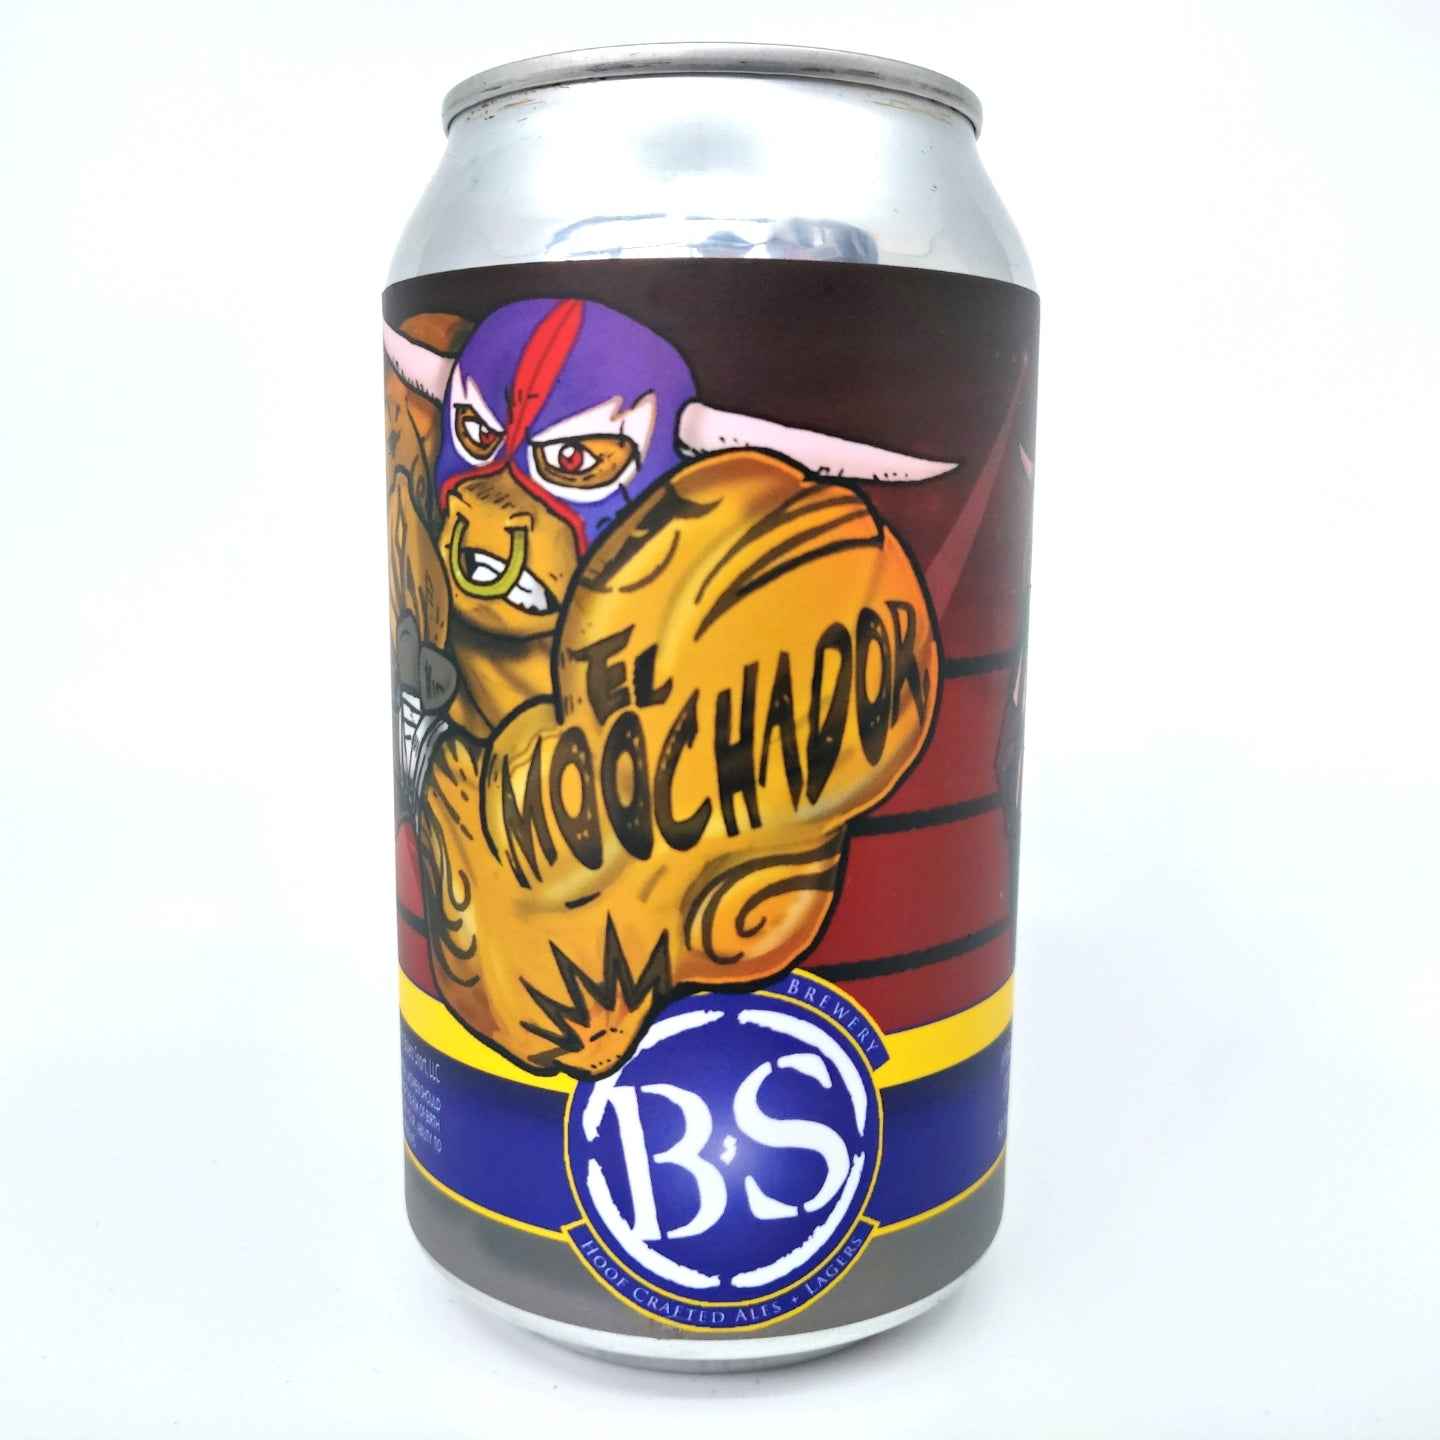 Bolero Snort El Moochador Imperial Stout 11% (330ml can)-Hop Burns & Black